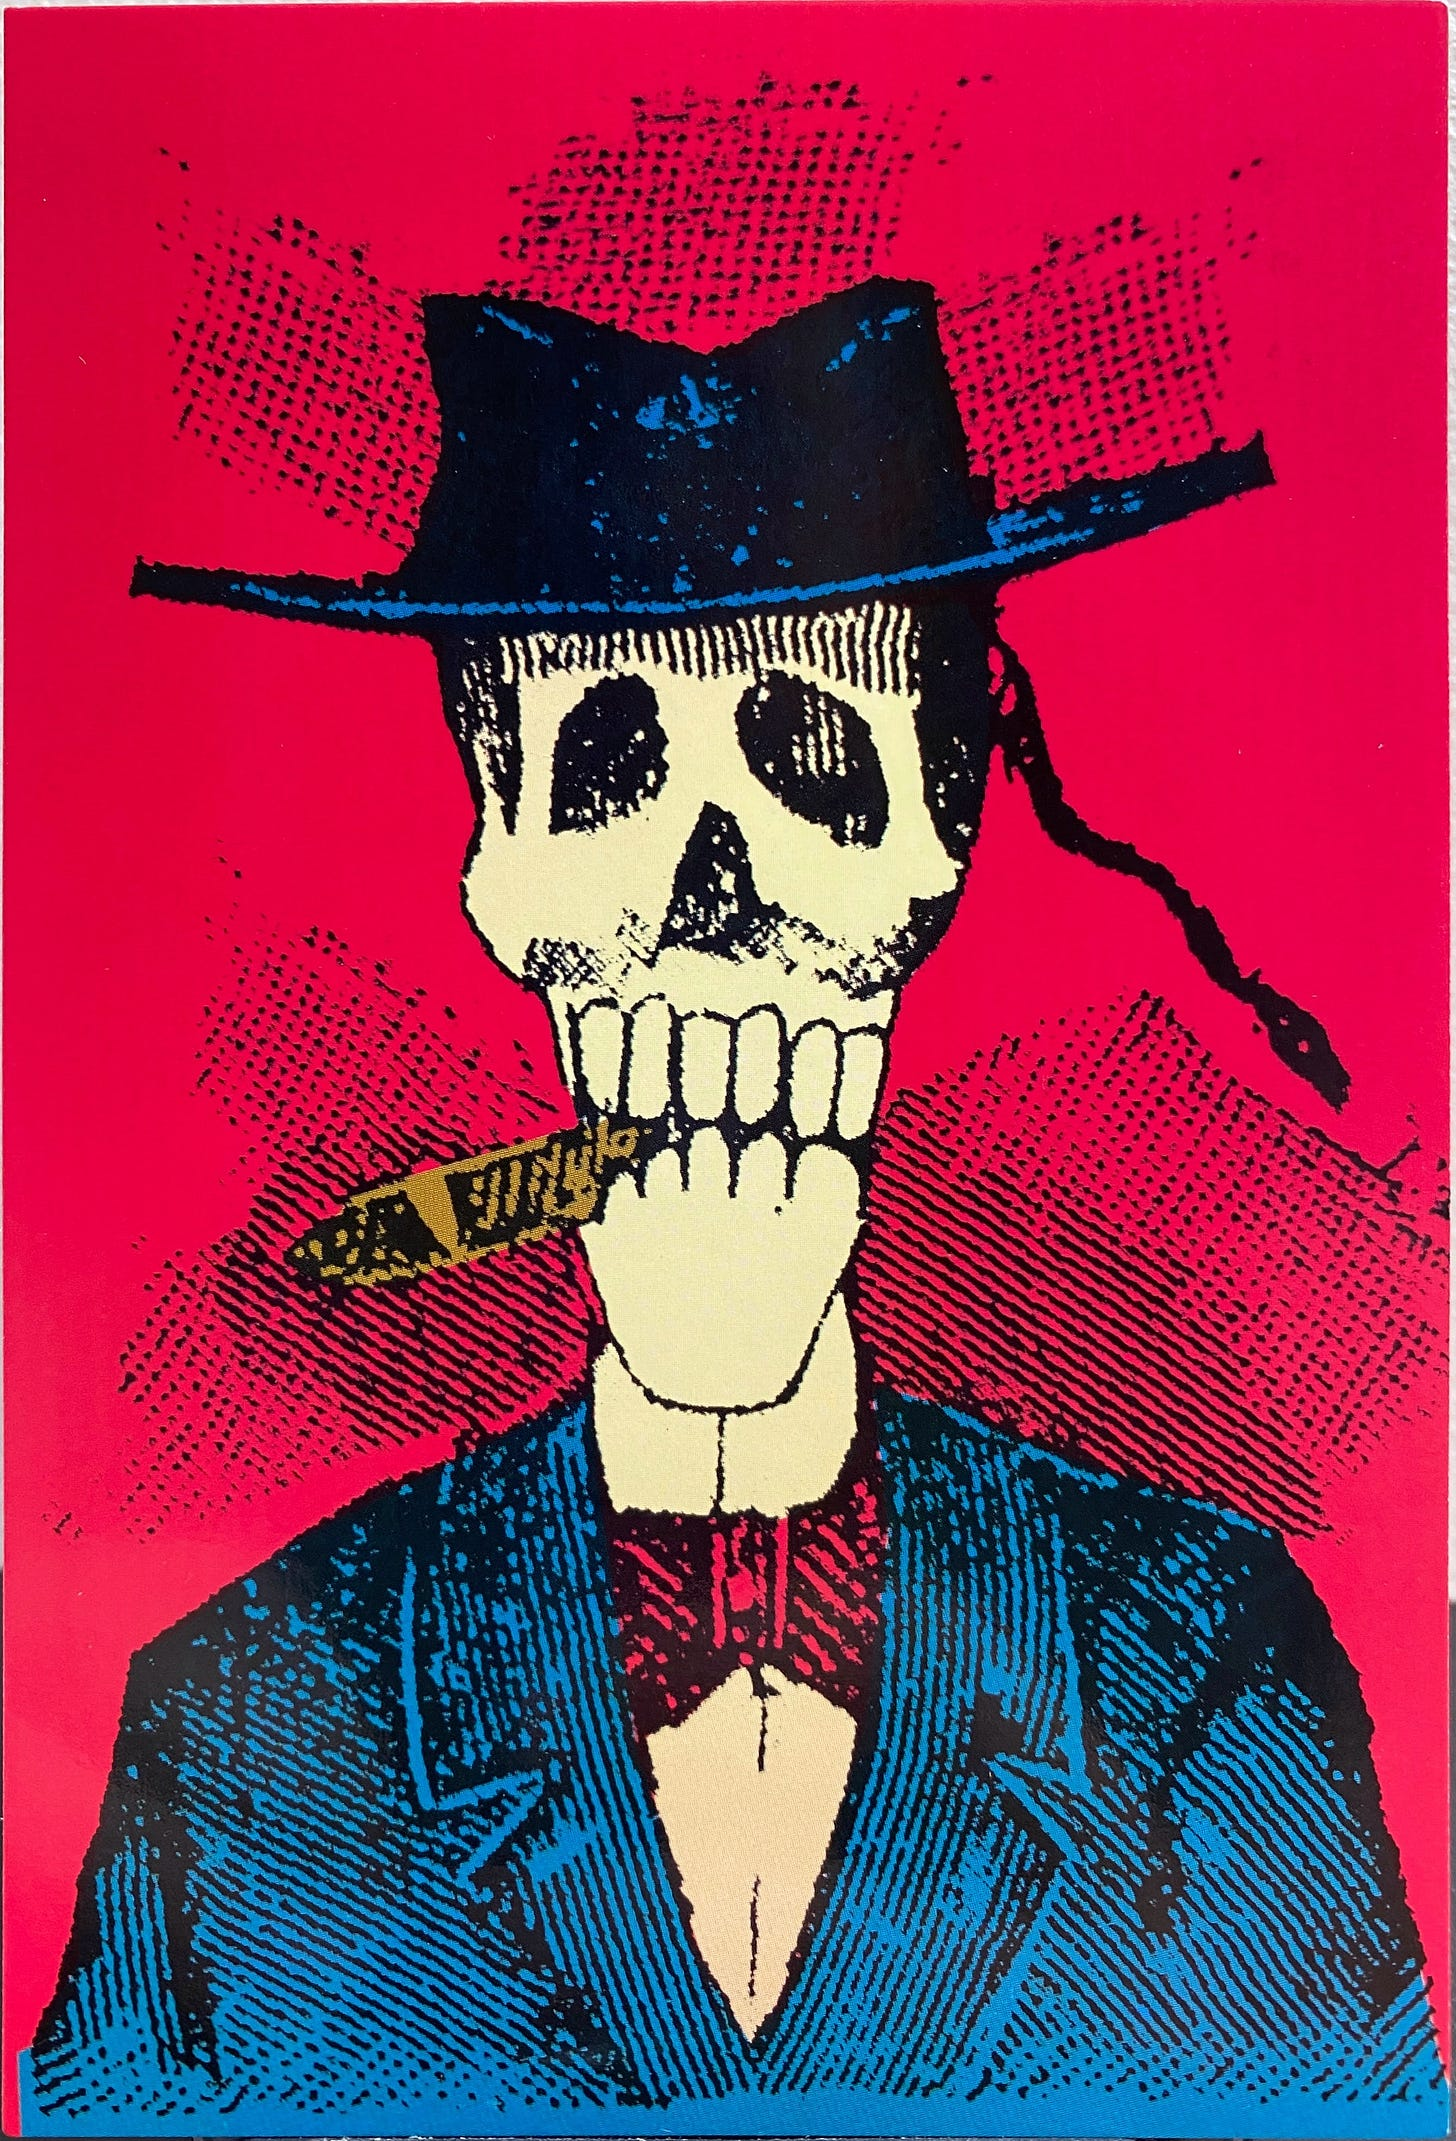 A skeleton as seen in a portrait, wearing a hat, an elegant jacket and a bowtie. It has a somber and sad look, with a cigar between their teeth.